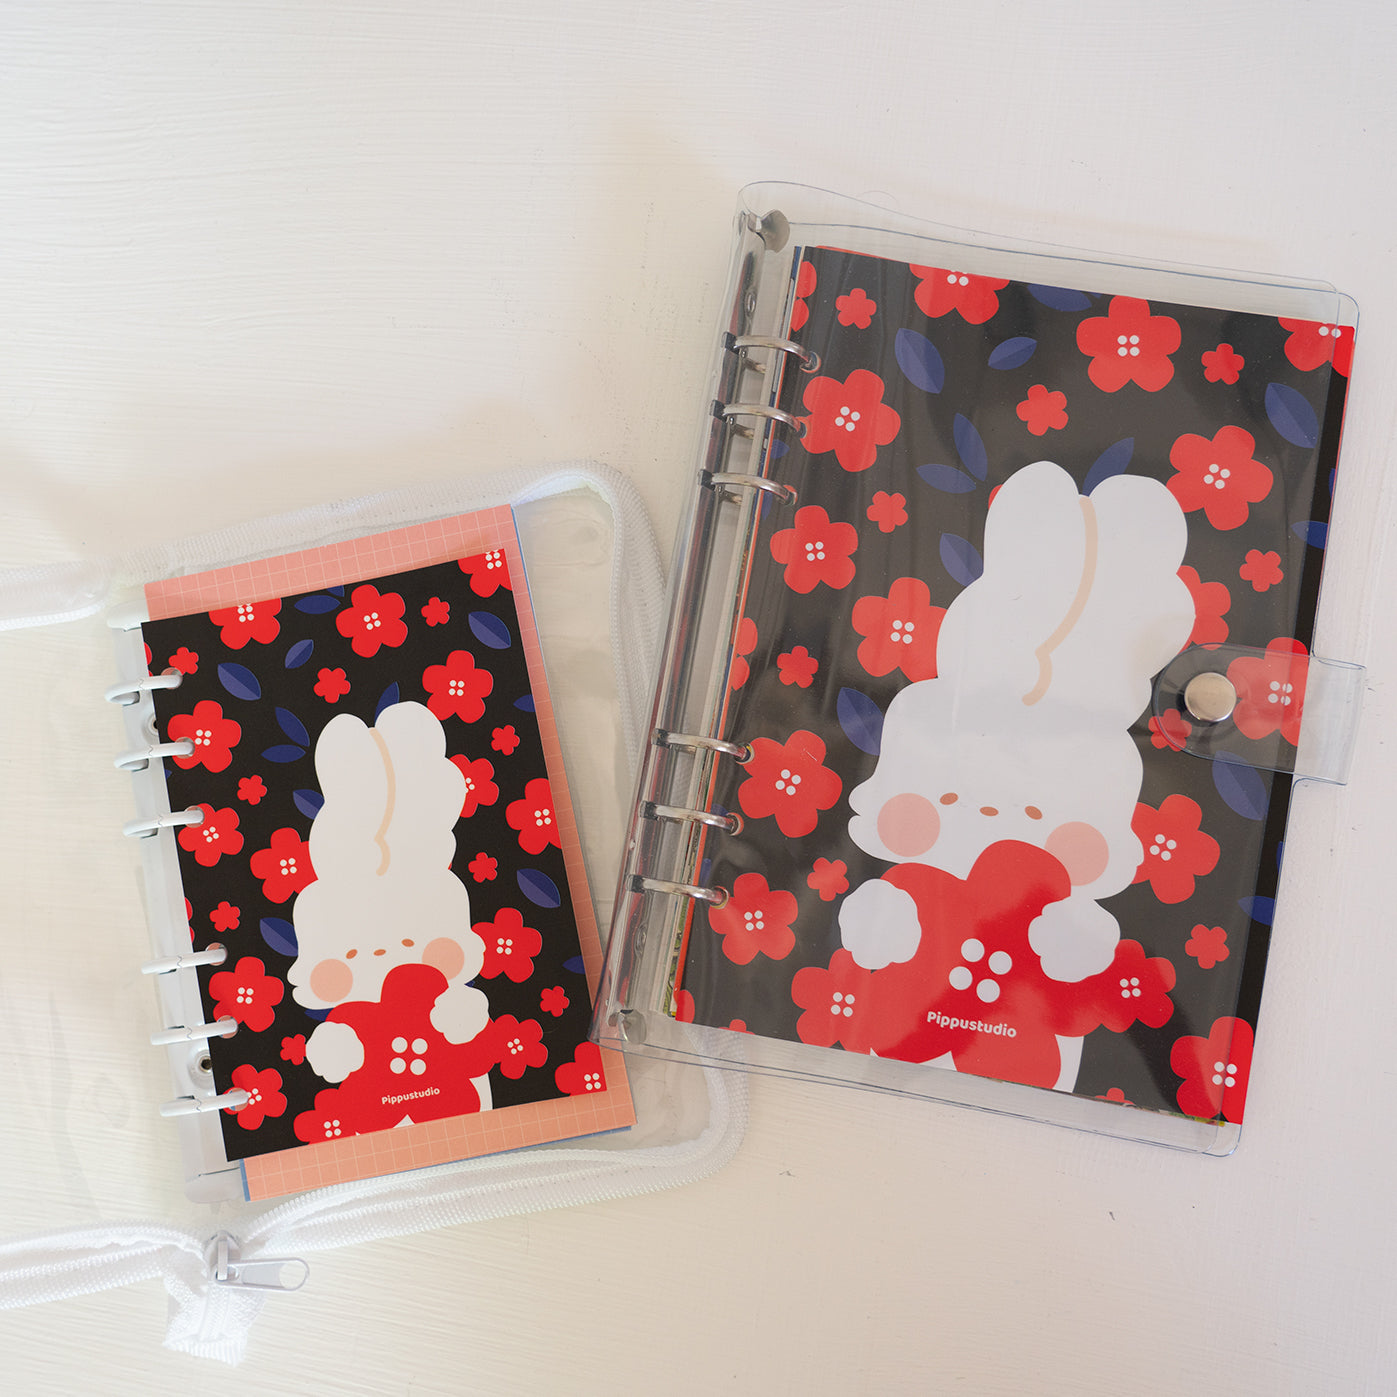 Missy and red flowers print